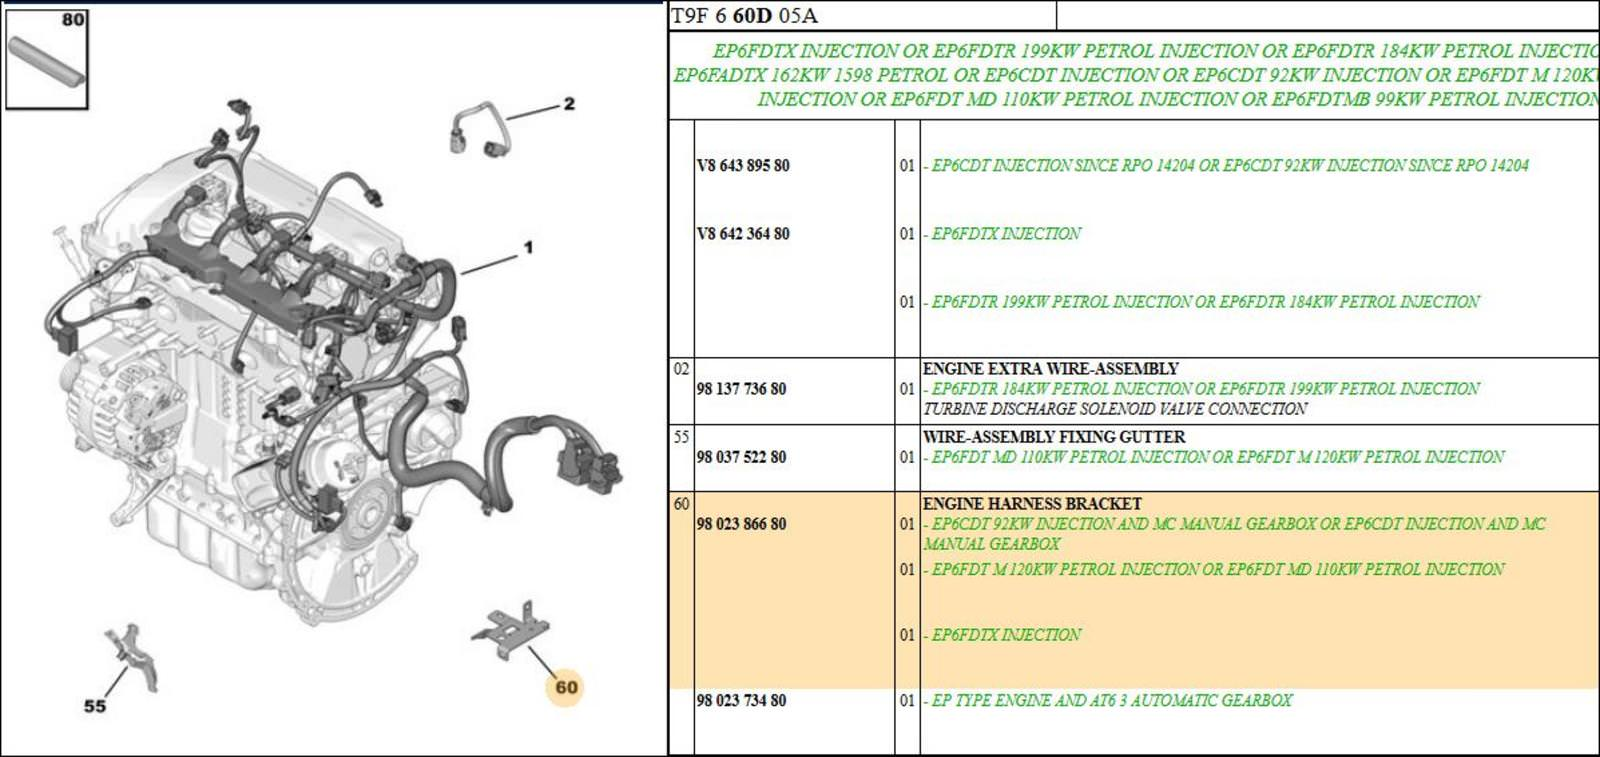 hight resolution of t9 wiring diagram wiring diagram today t9 wiring diagram